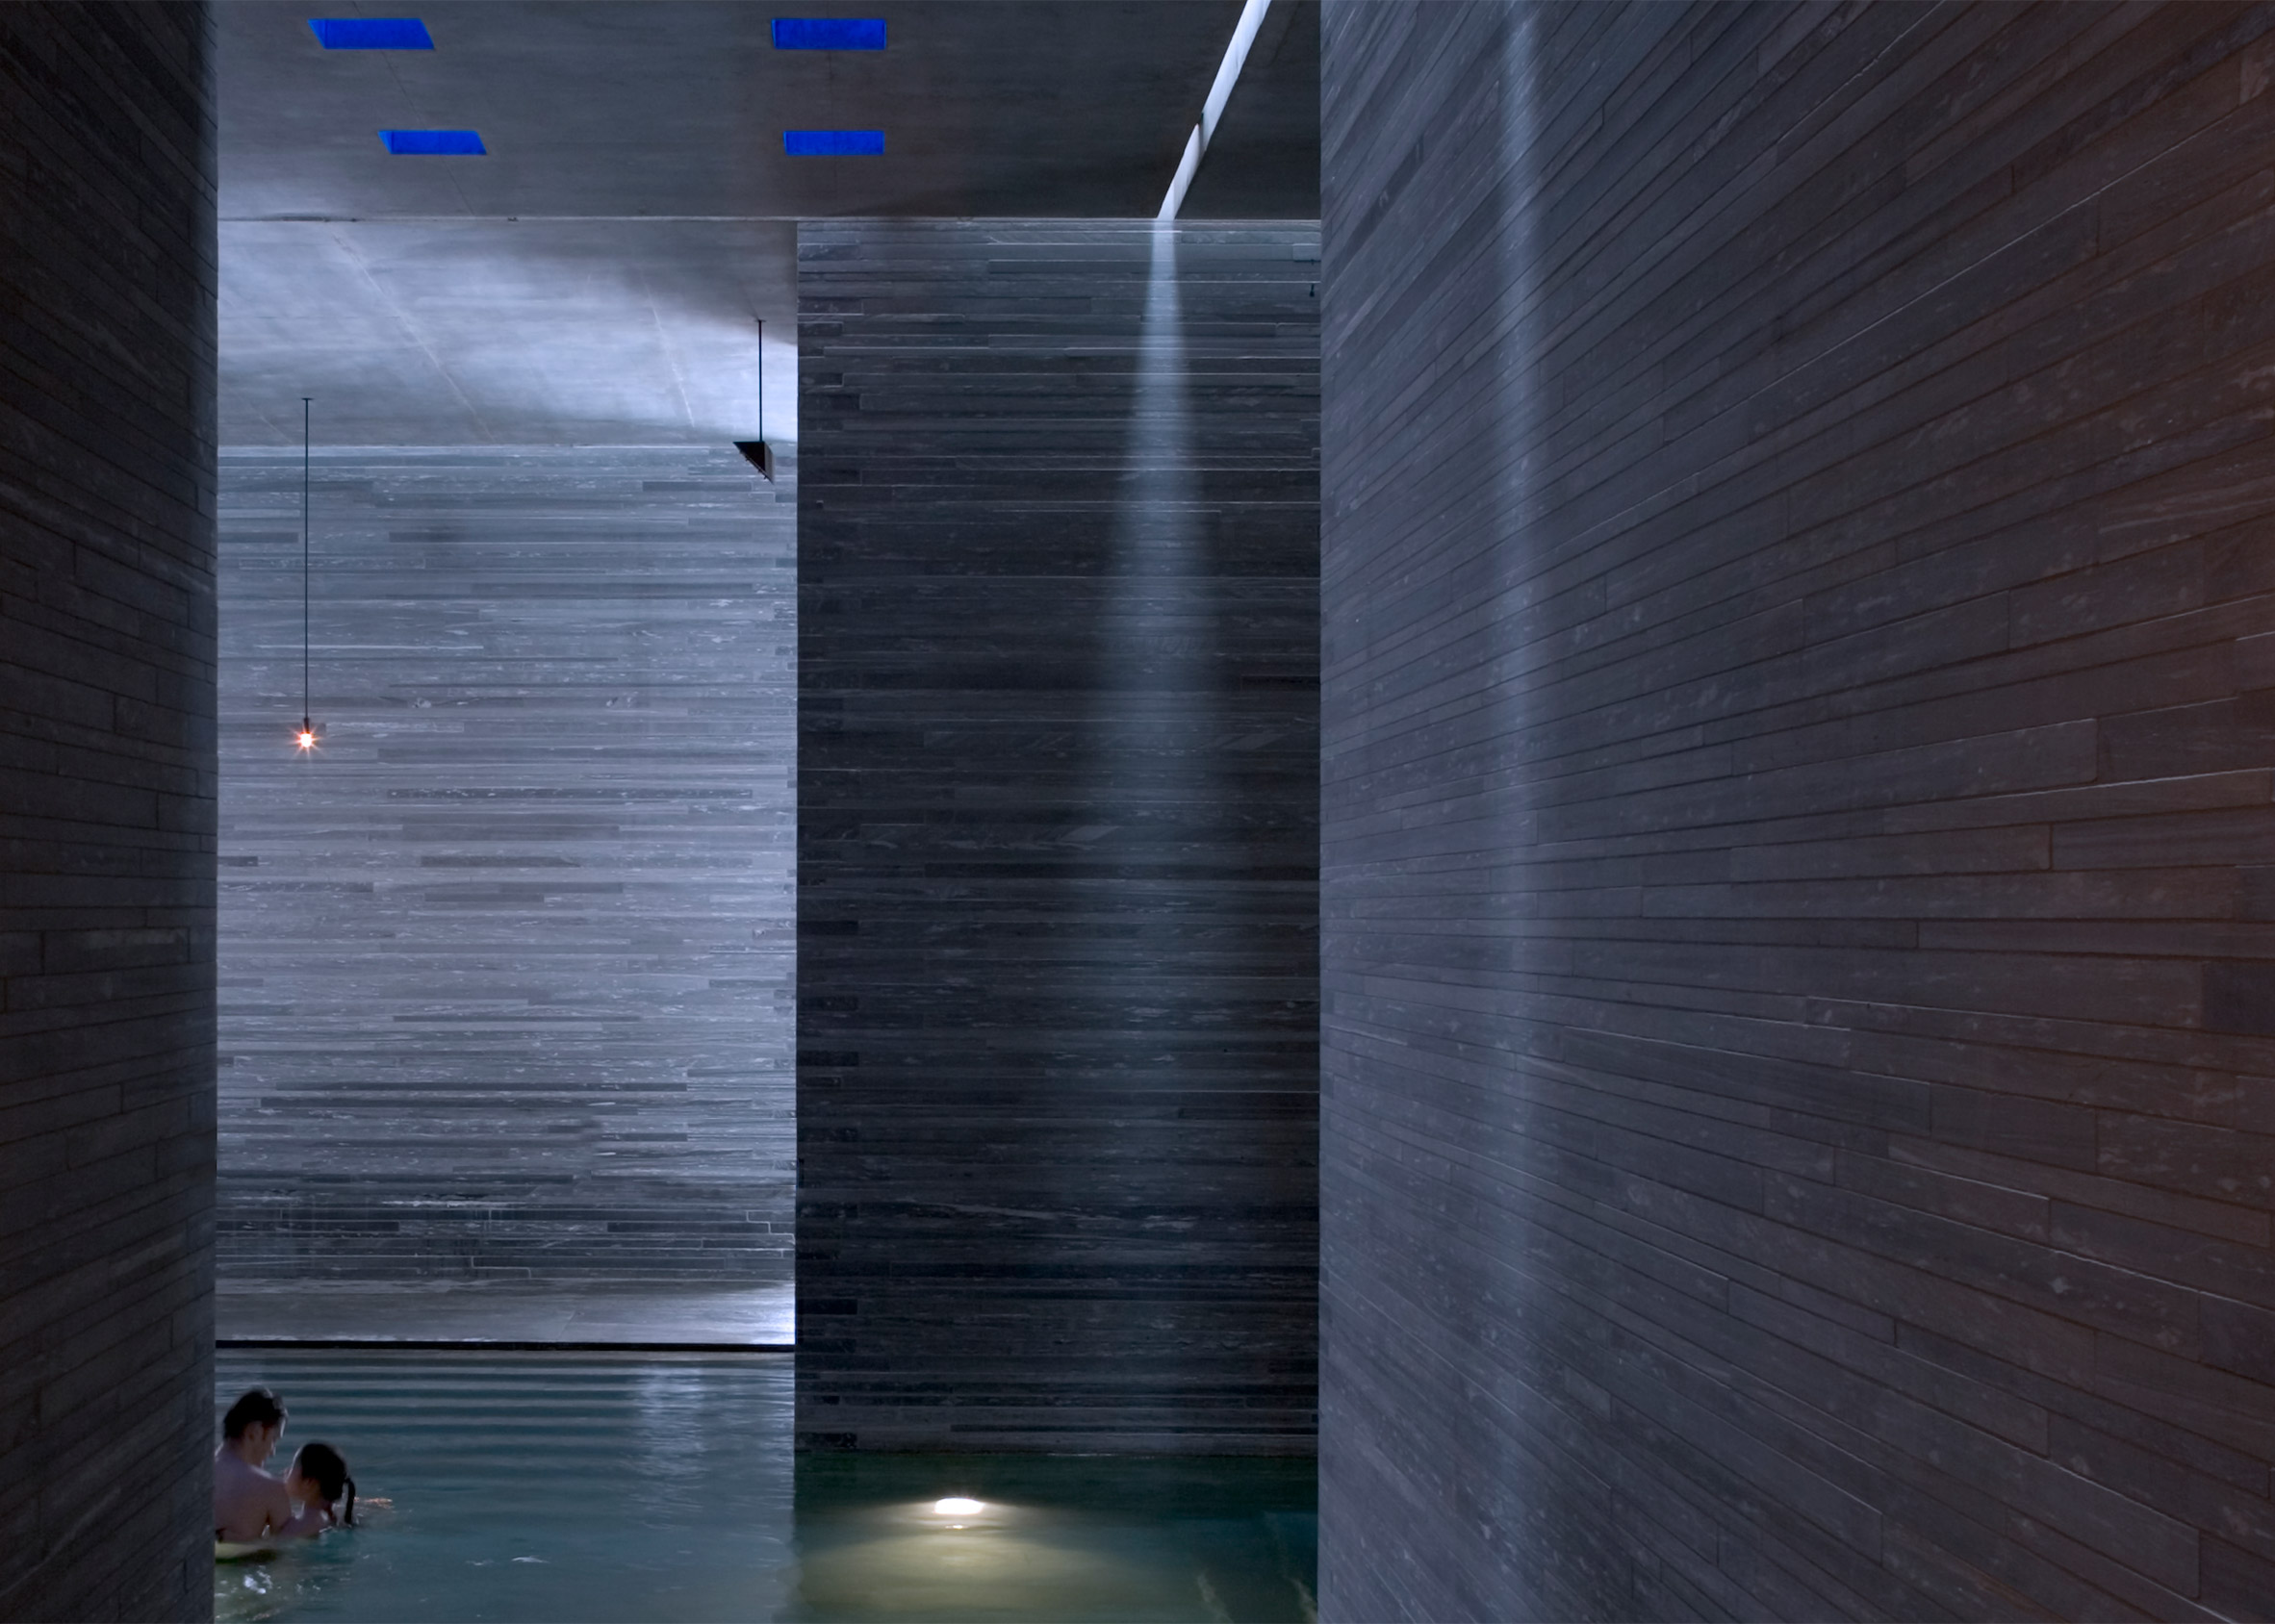 Vals by Peter Zumthor is part of Jane Withers' installation Soak Steam Dream at the London Design Festival 2016